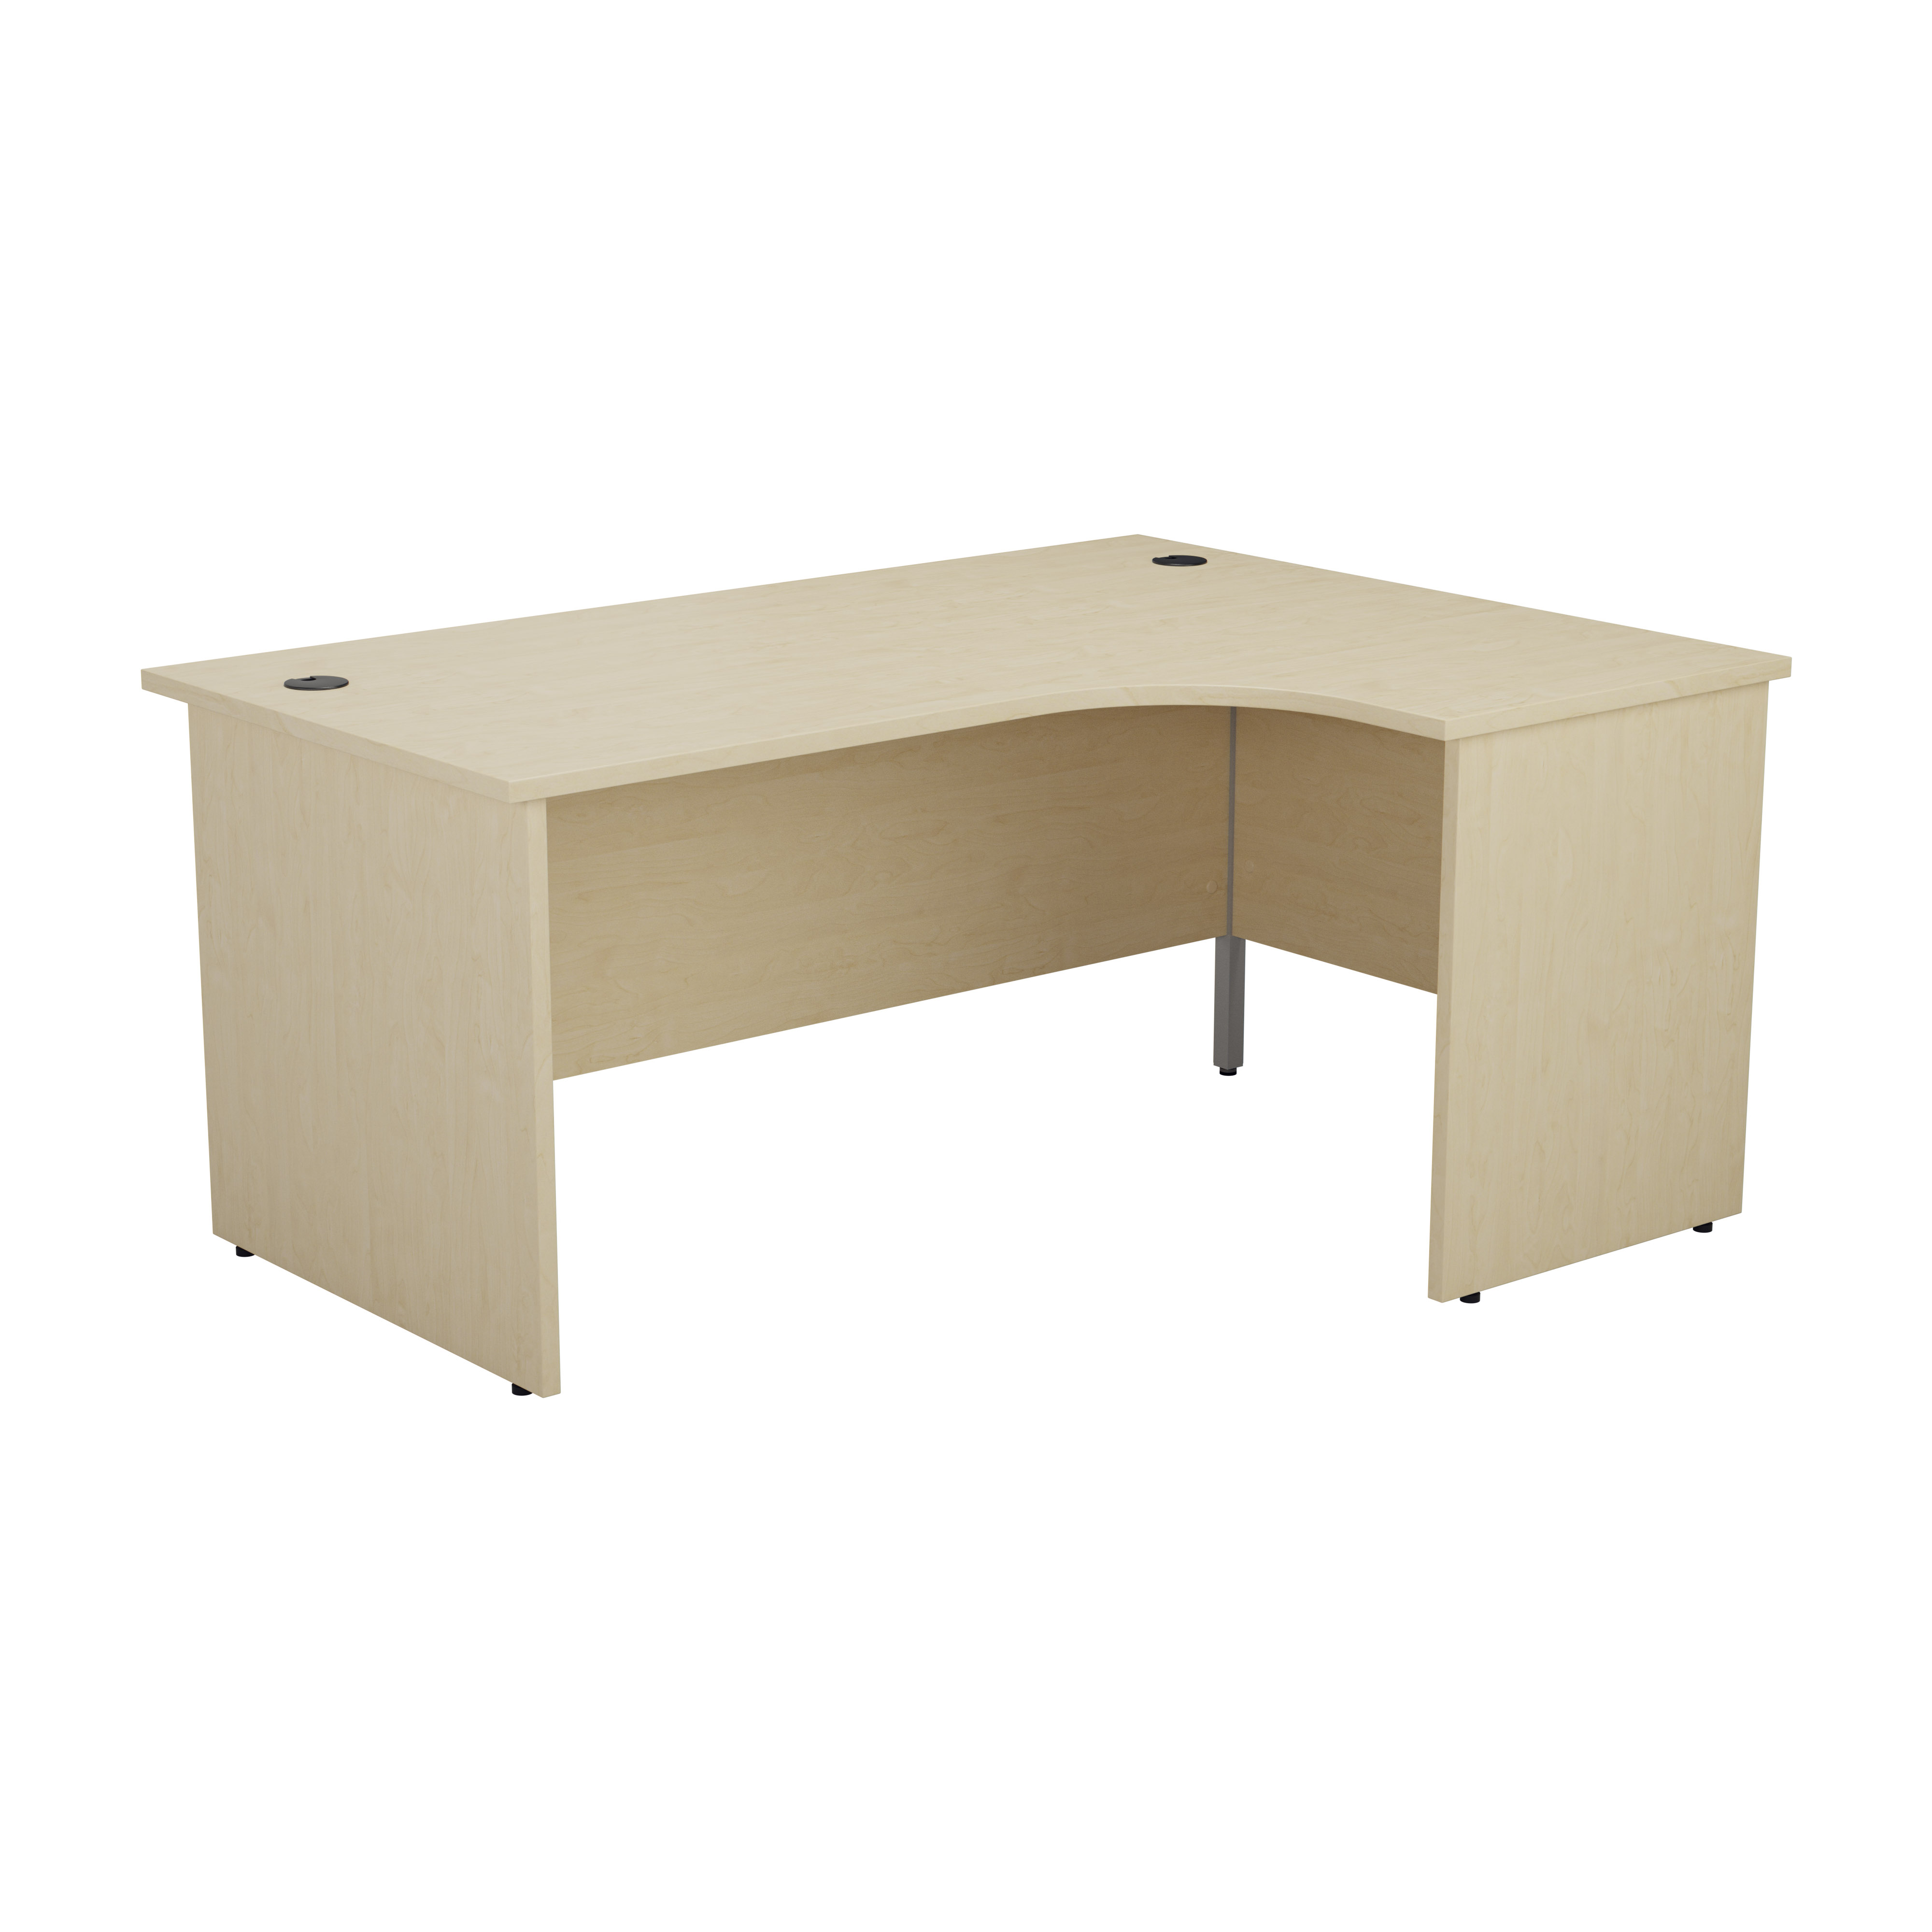 Essentials - 1800mm Panel End Right Hand Crescent Desk